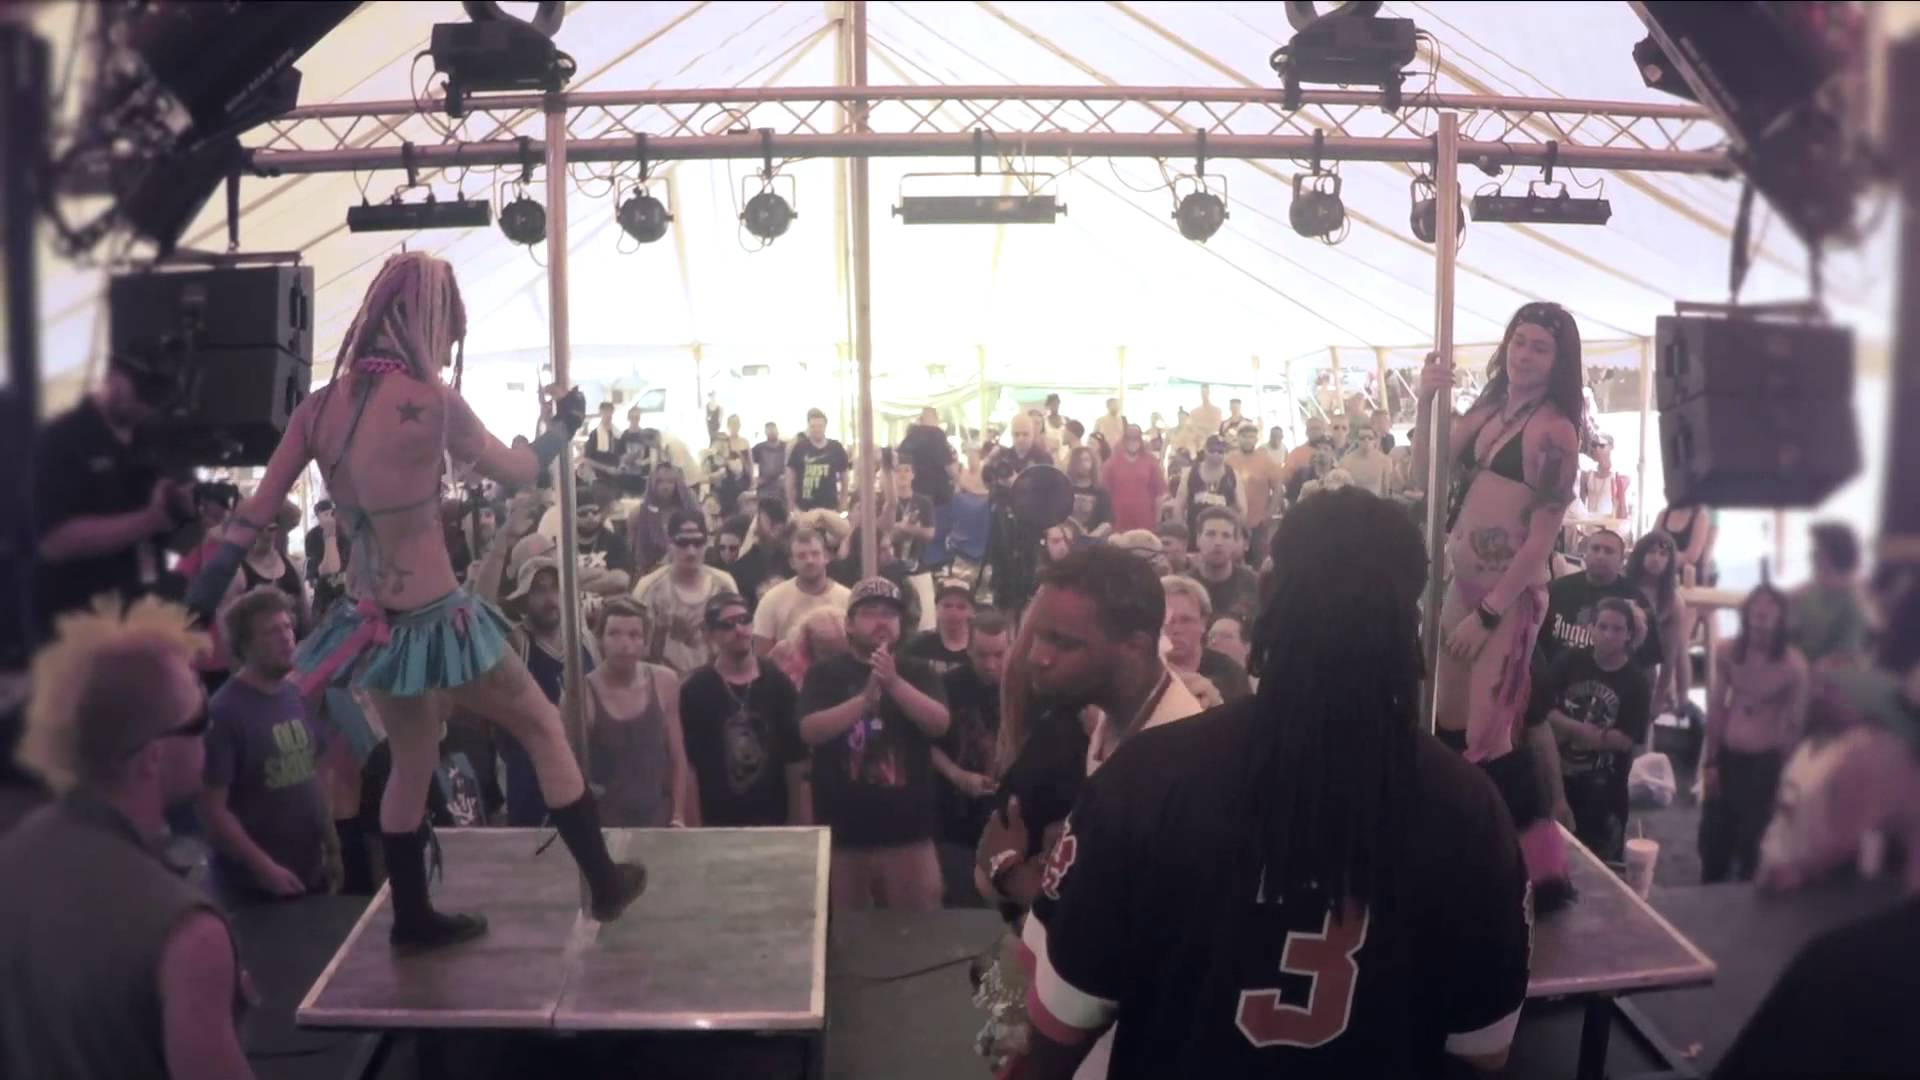 last year u2019s juggalo psypher contest winners performing on